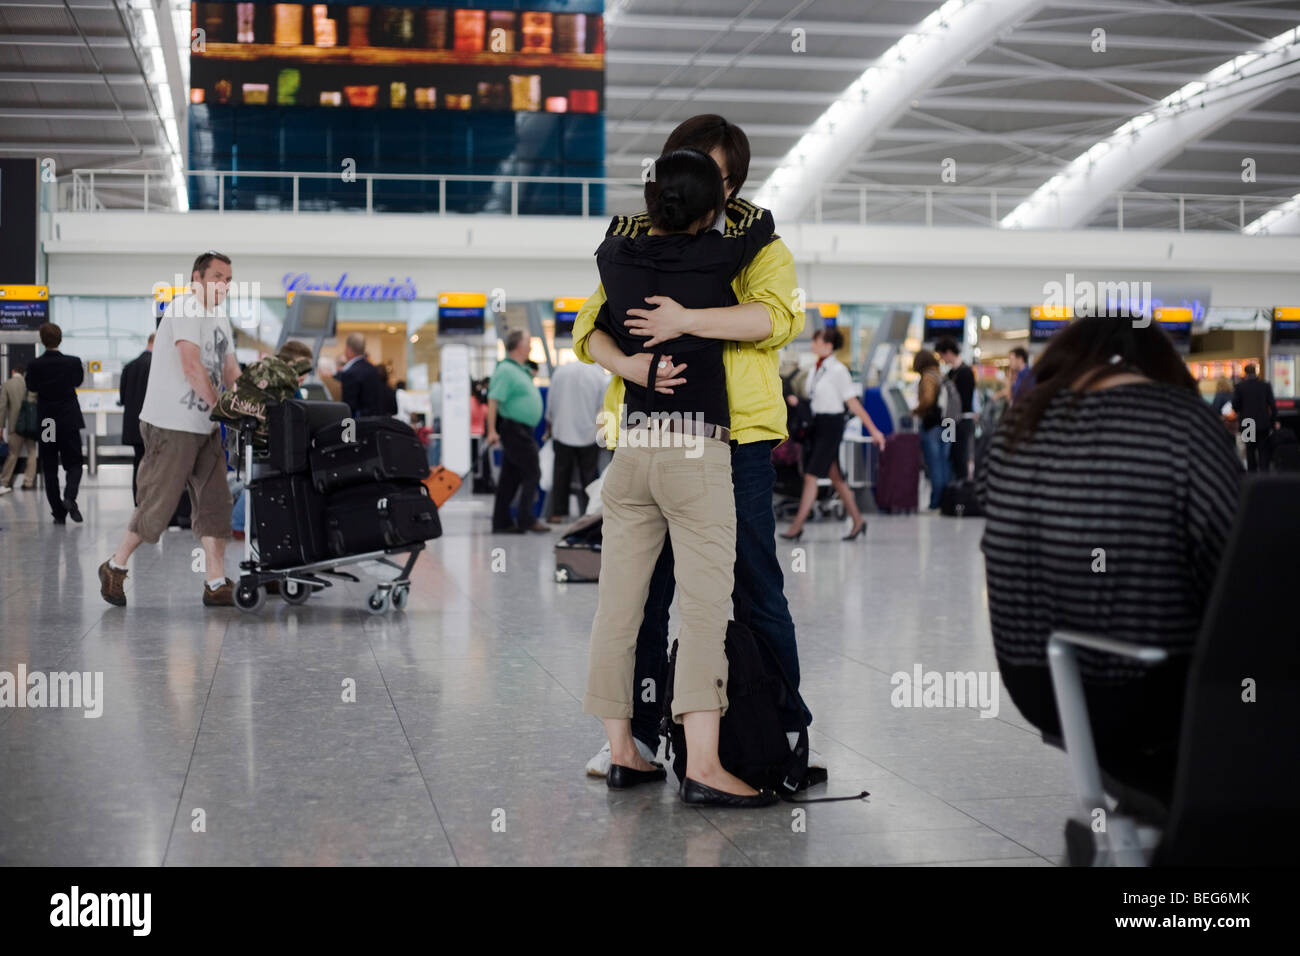 Young lovers say tearful farewells in departures concourse of Heathrow airport's terminal 5. - Stock Image